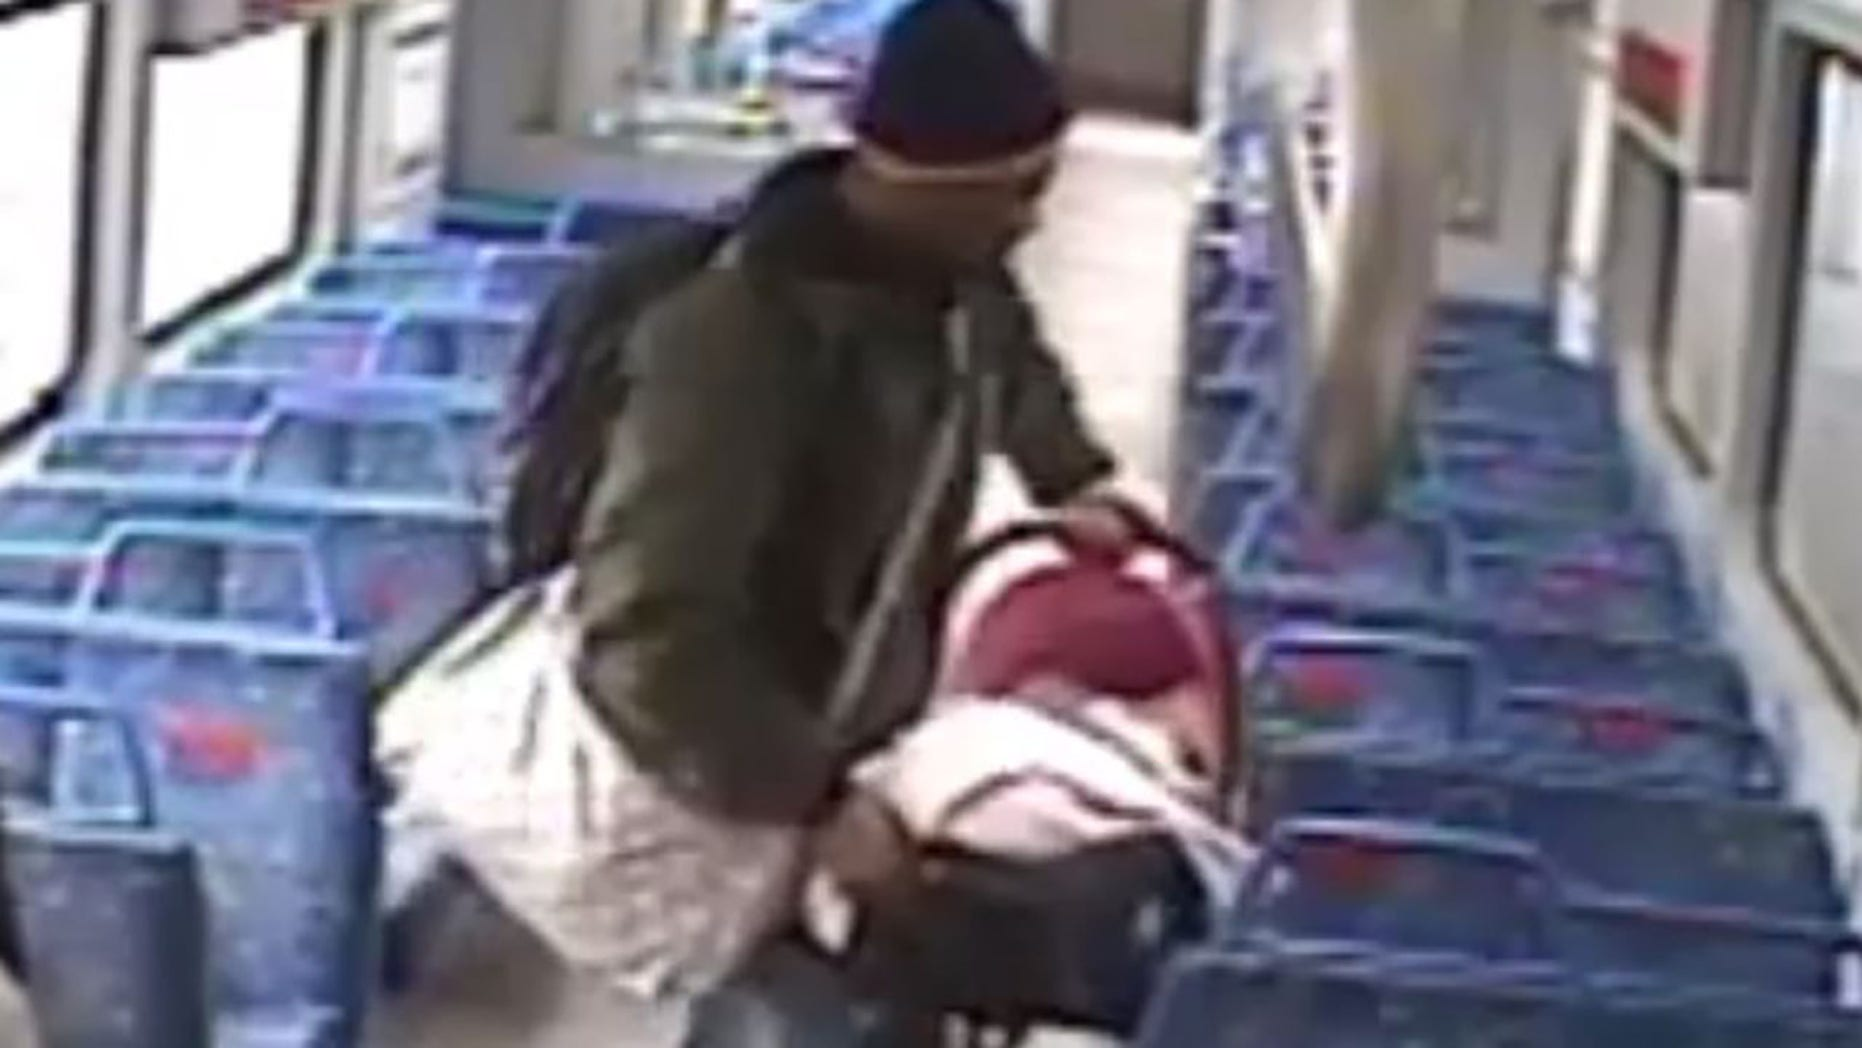 Baby on board - father left on Cleveland platform